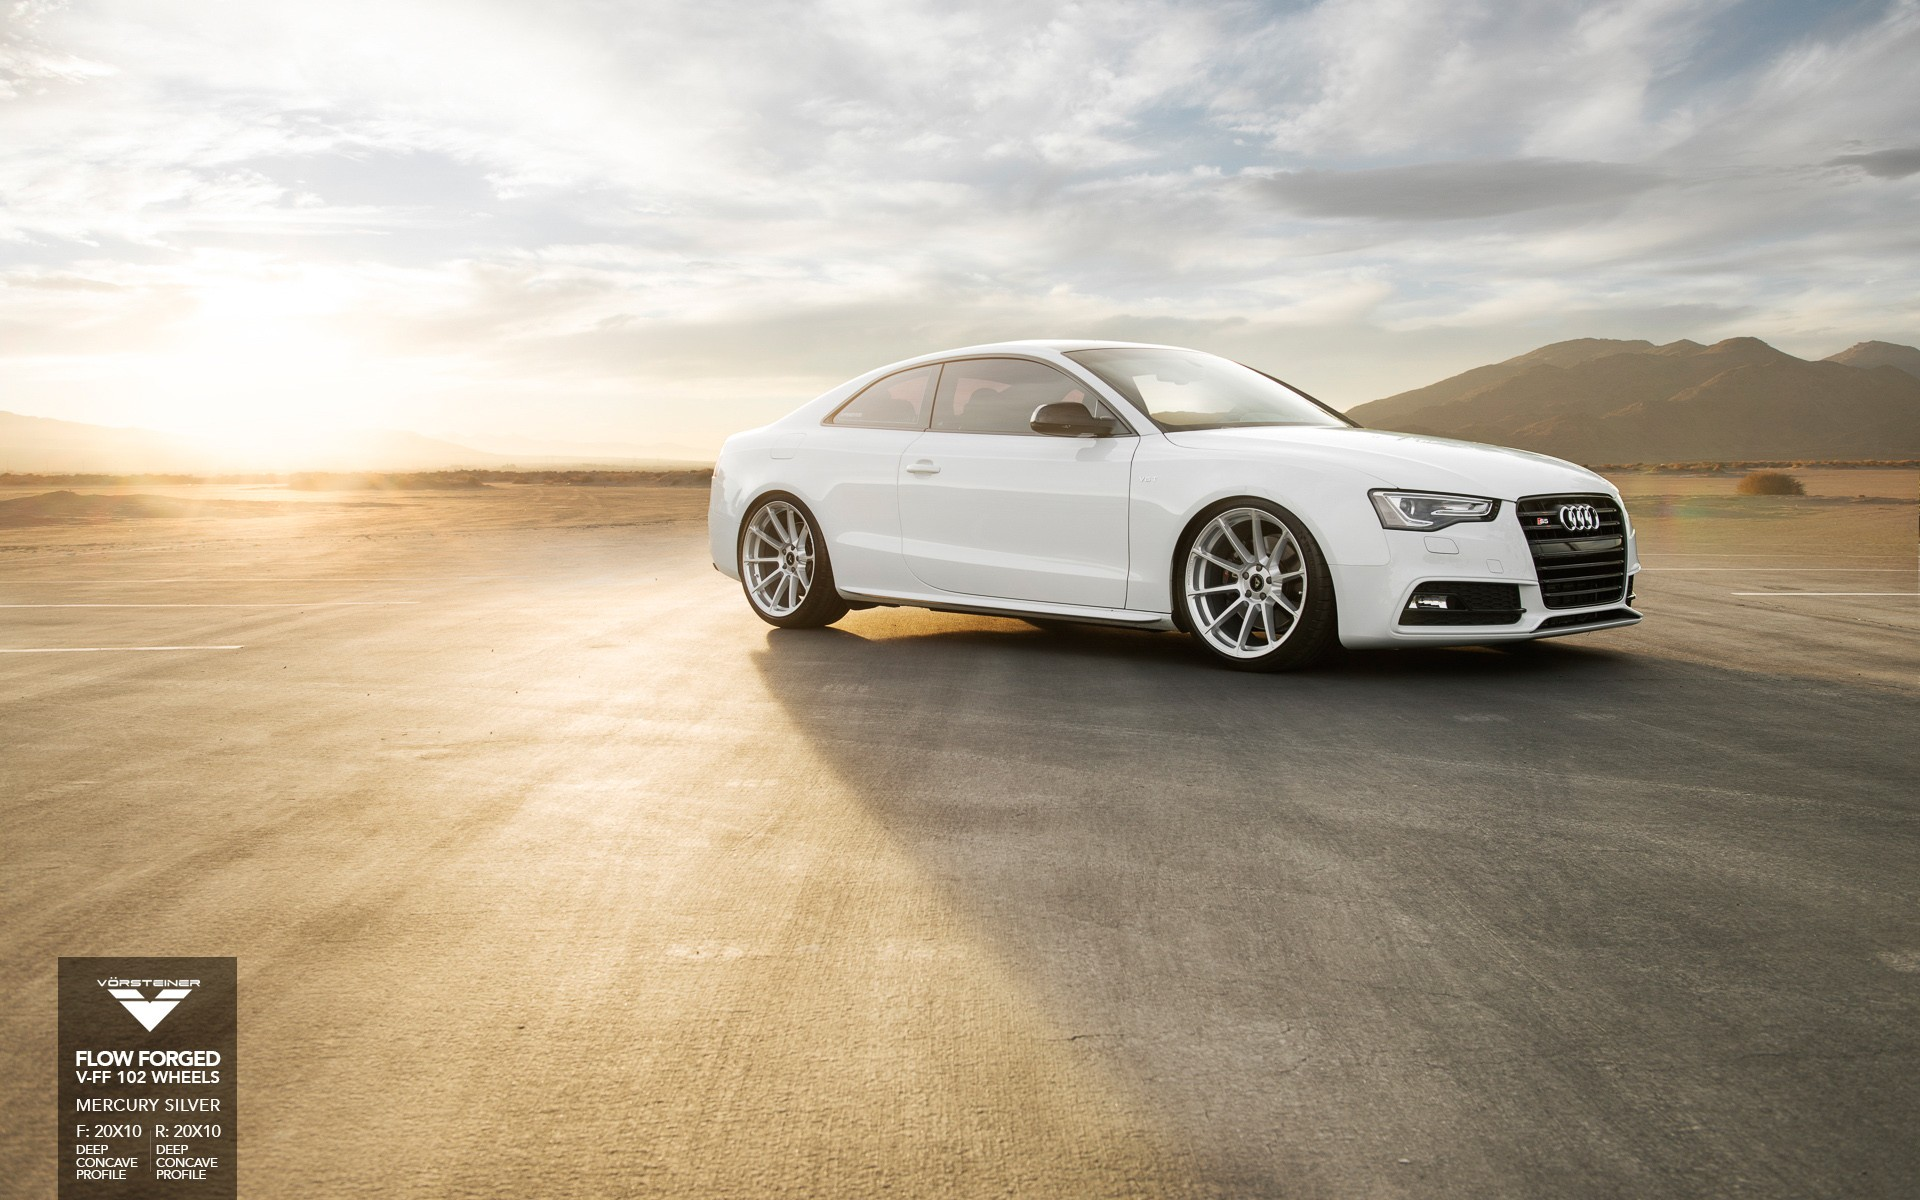 Vorsteiner audi s5 wallpaper hd car wallpapers id 5513 - Car wallpapers for galaxy s5 ...